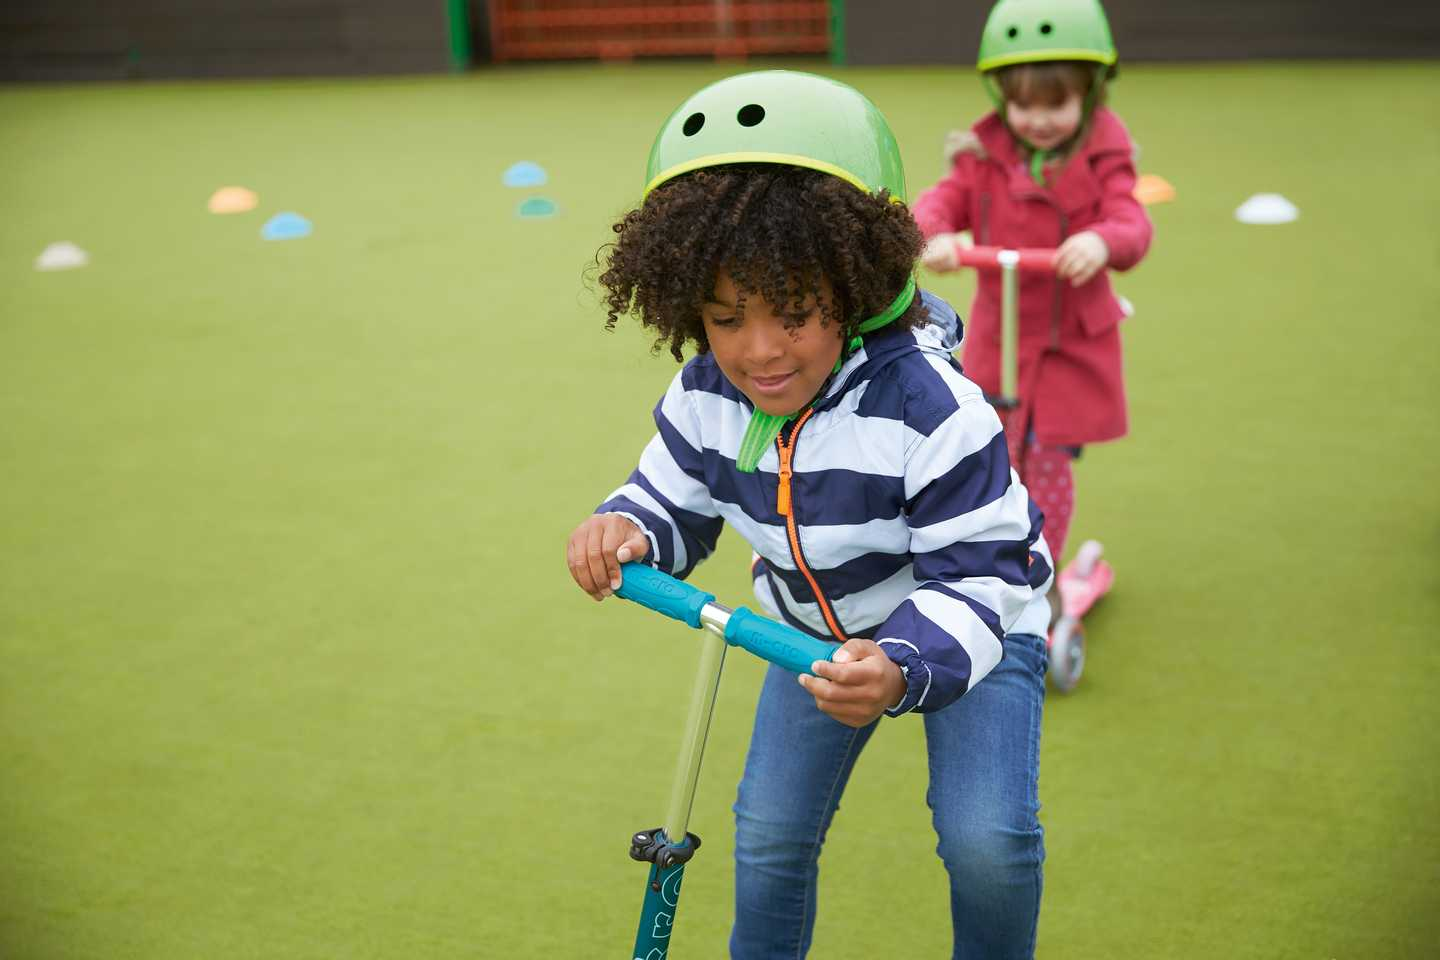 Kids playing on scooters